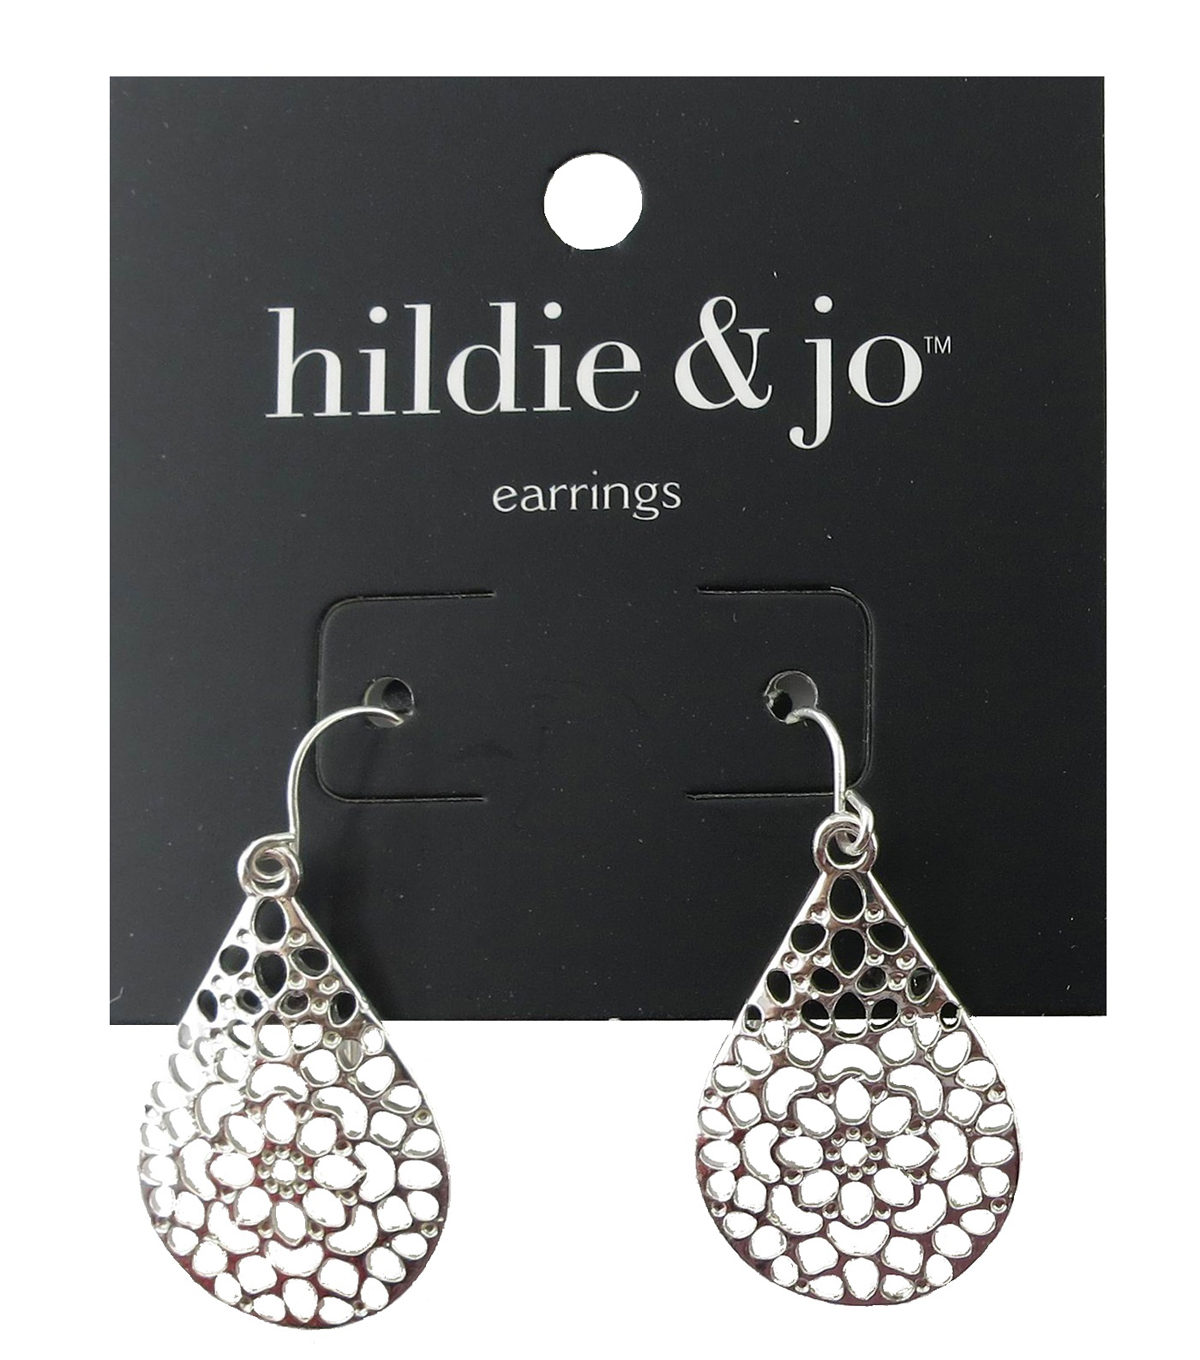 hildie & jo 1.13\u0027\u0027x0.75\u0027\u0027 Teardrop Cut Out Silver Earrings